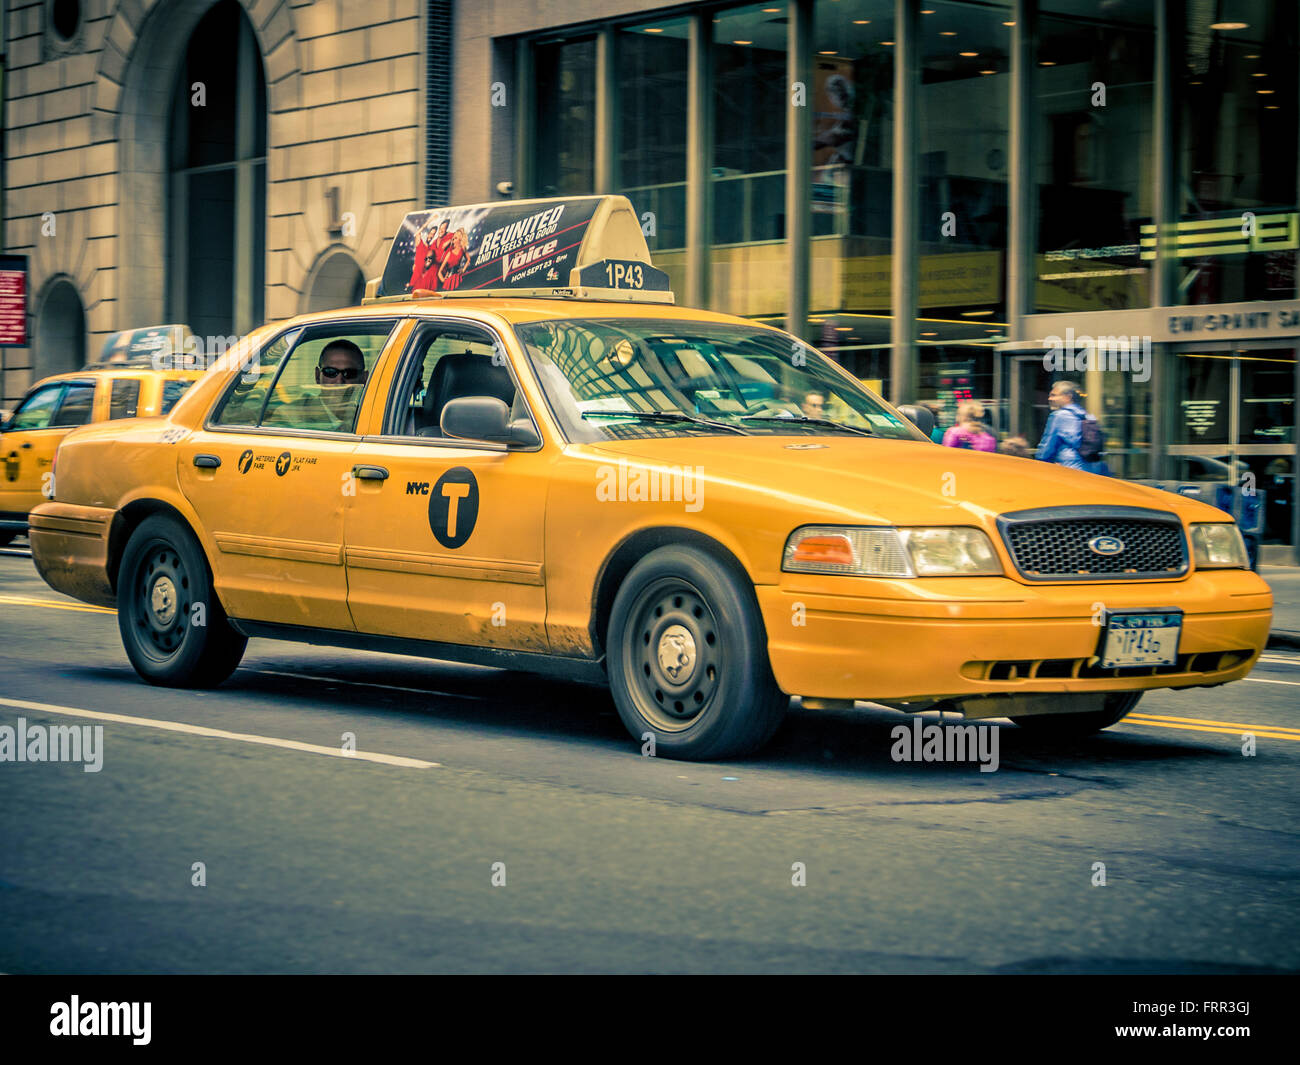 Taxi, New York City, USA - Stock Image